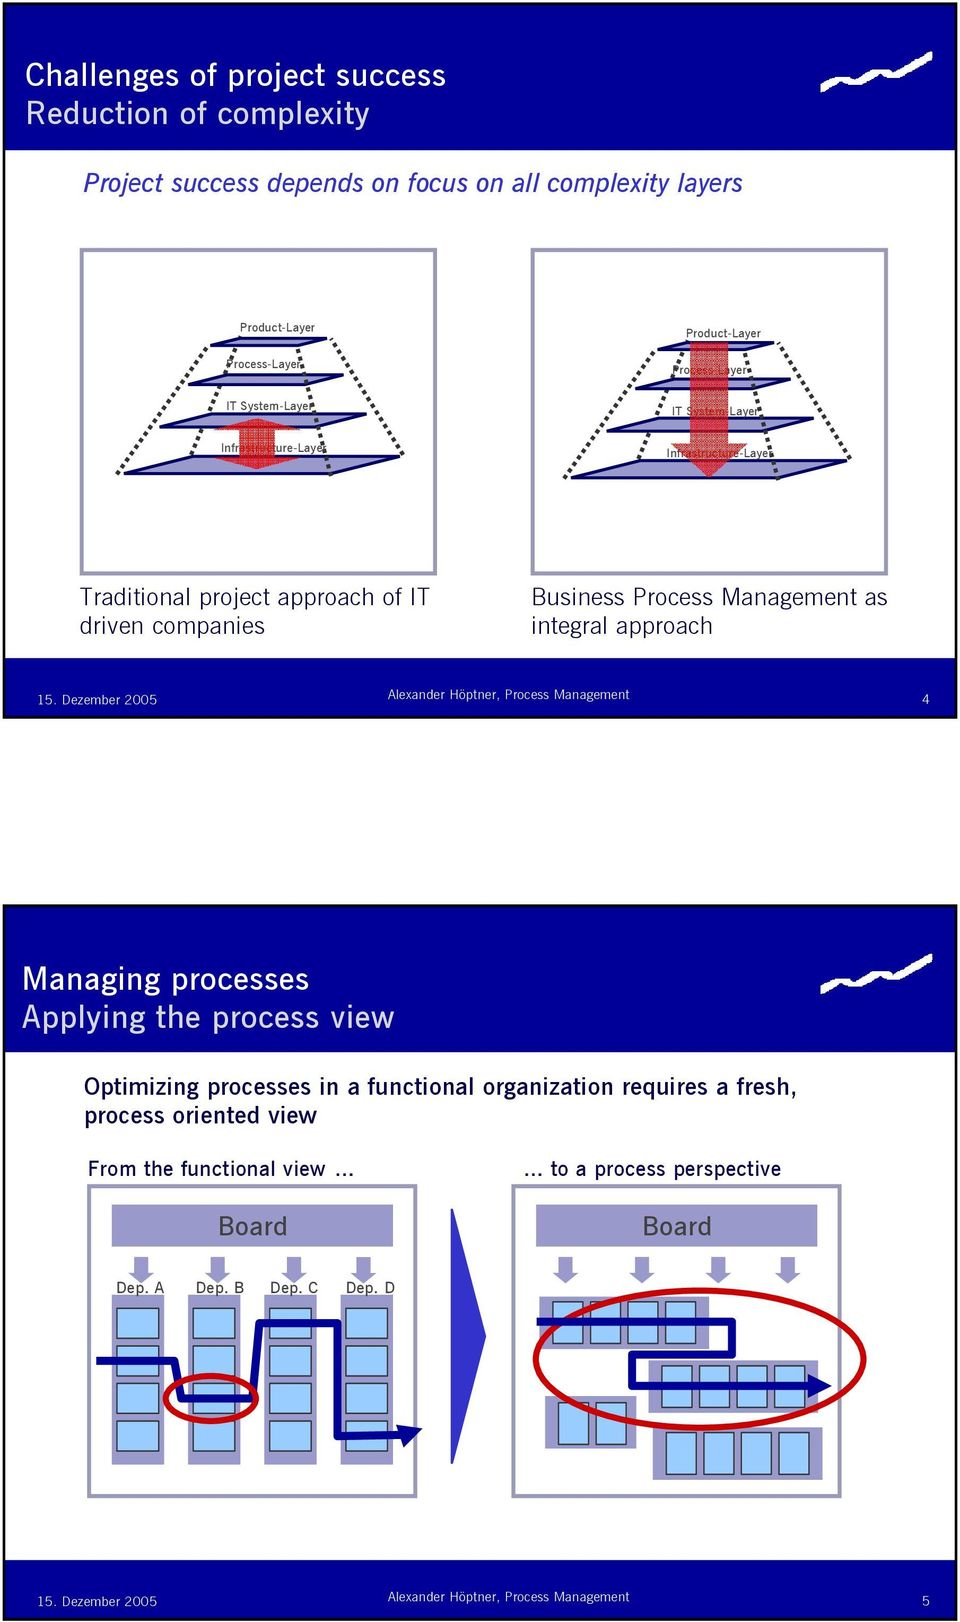 driven companies Busess Process Management as tegral approach 4 Managg processes Applyg the process view Optimizg processes a functional